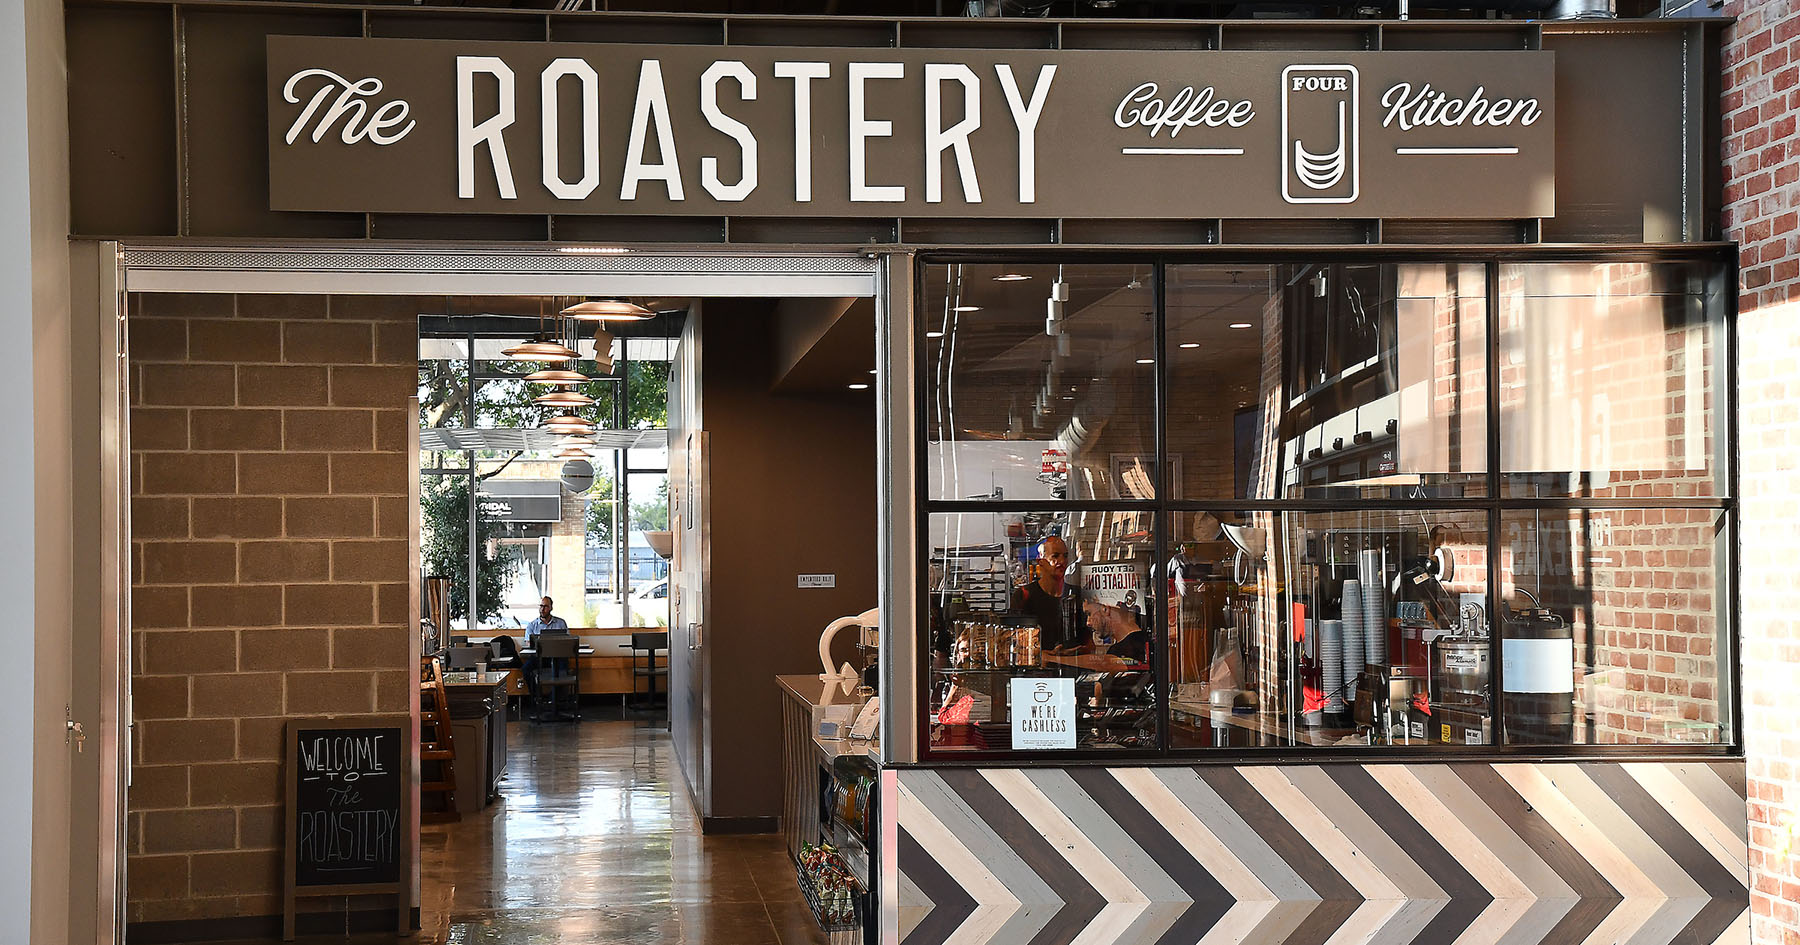 The Roastery Coffee Kitchen at H-E-B Houston